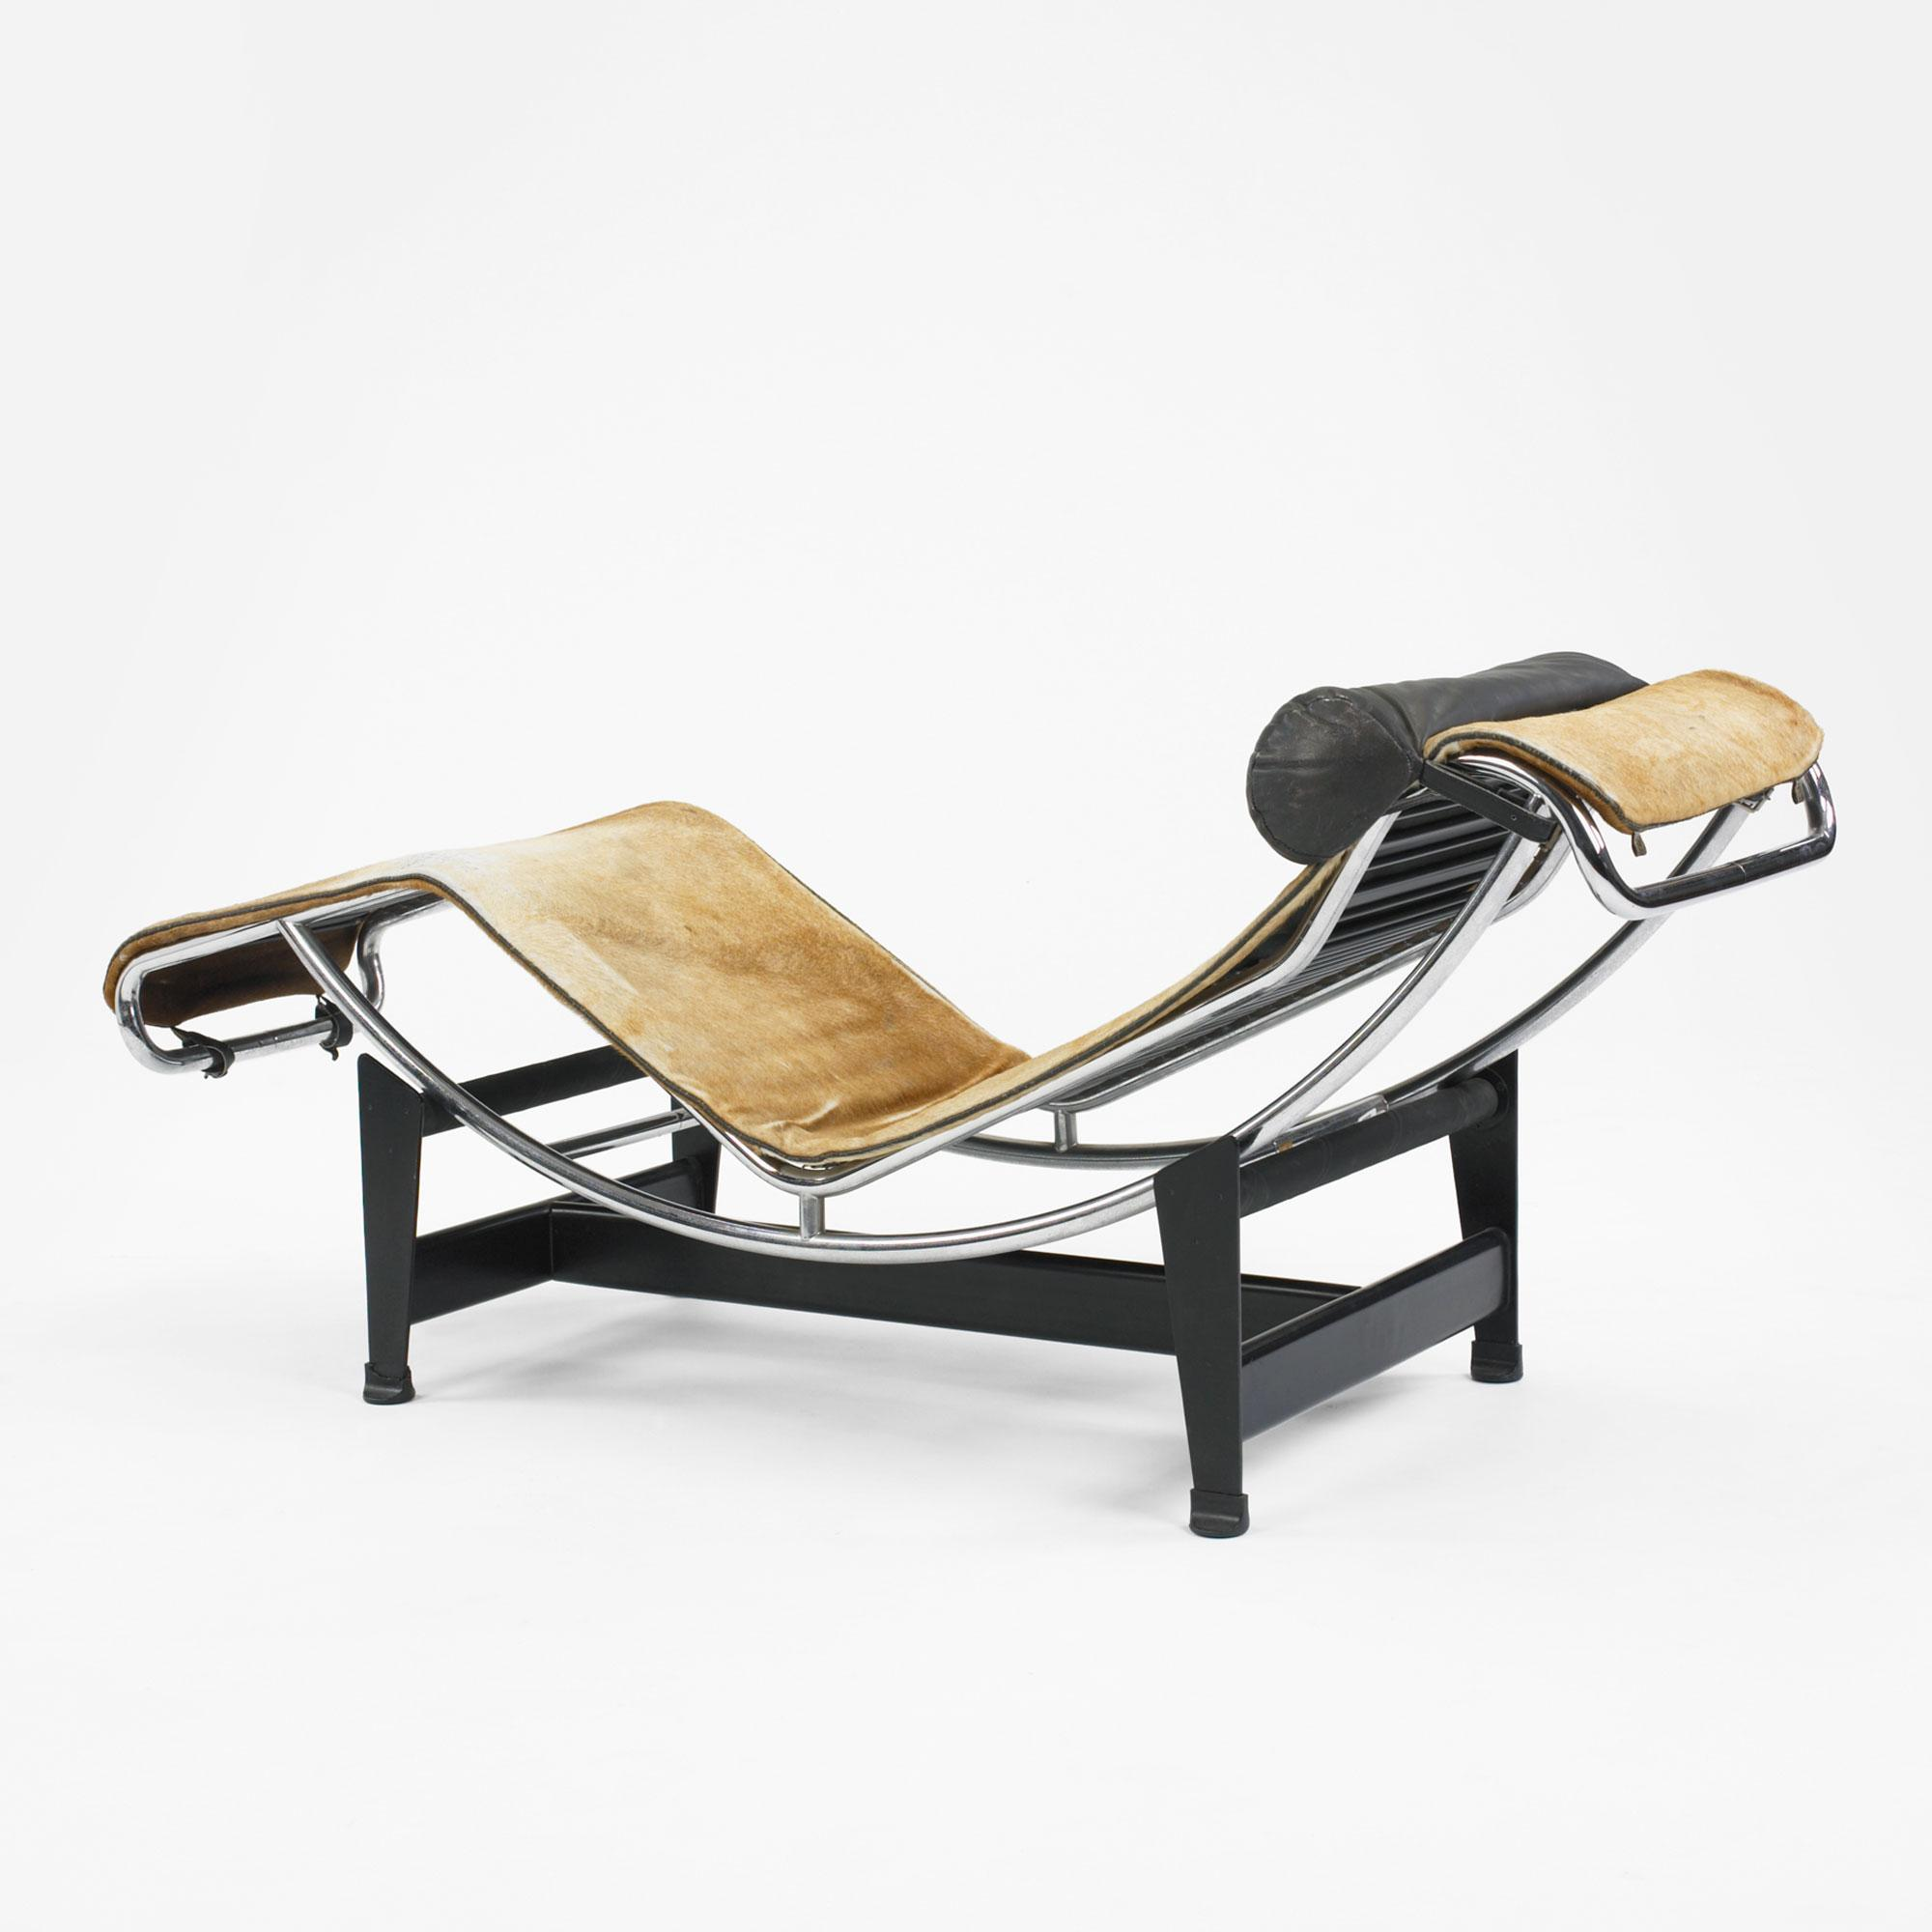 Charlotte perriand pierre jeanneret and le corbusier lc 4 for Chaise lounge corbusier